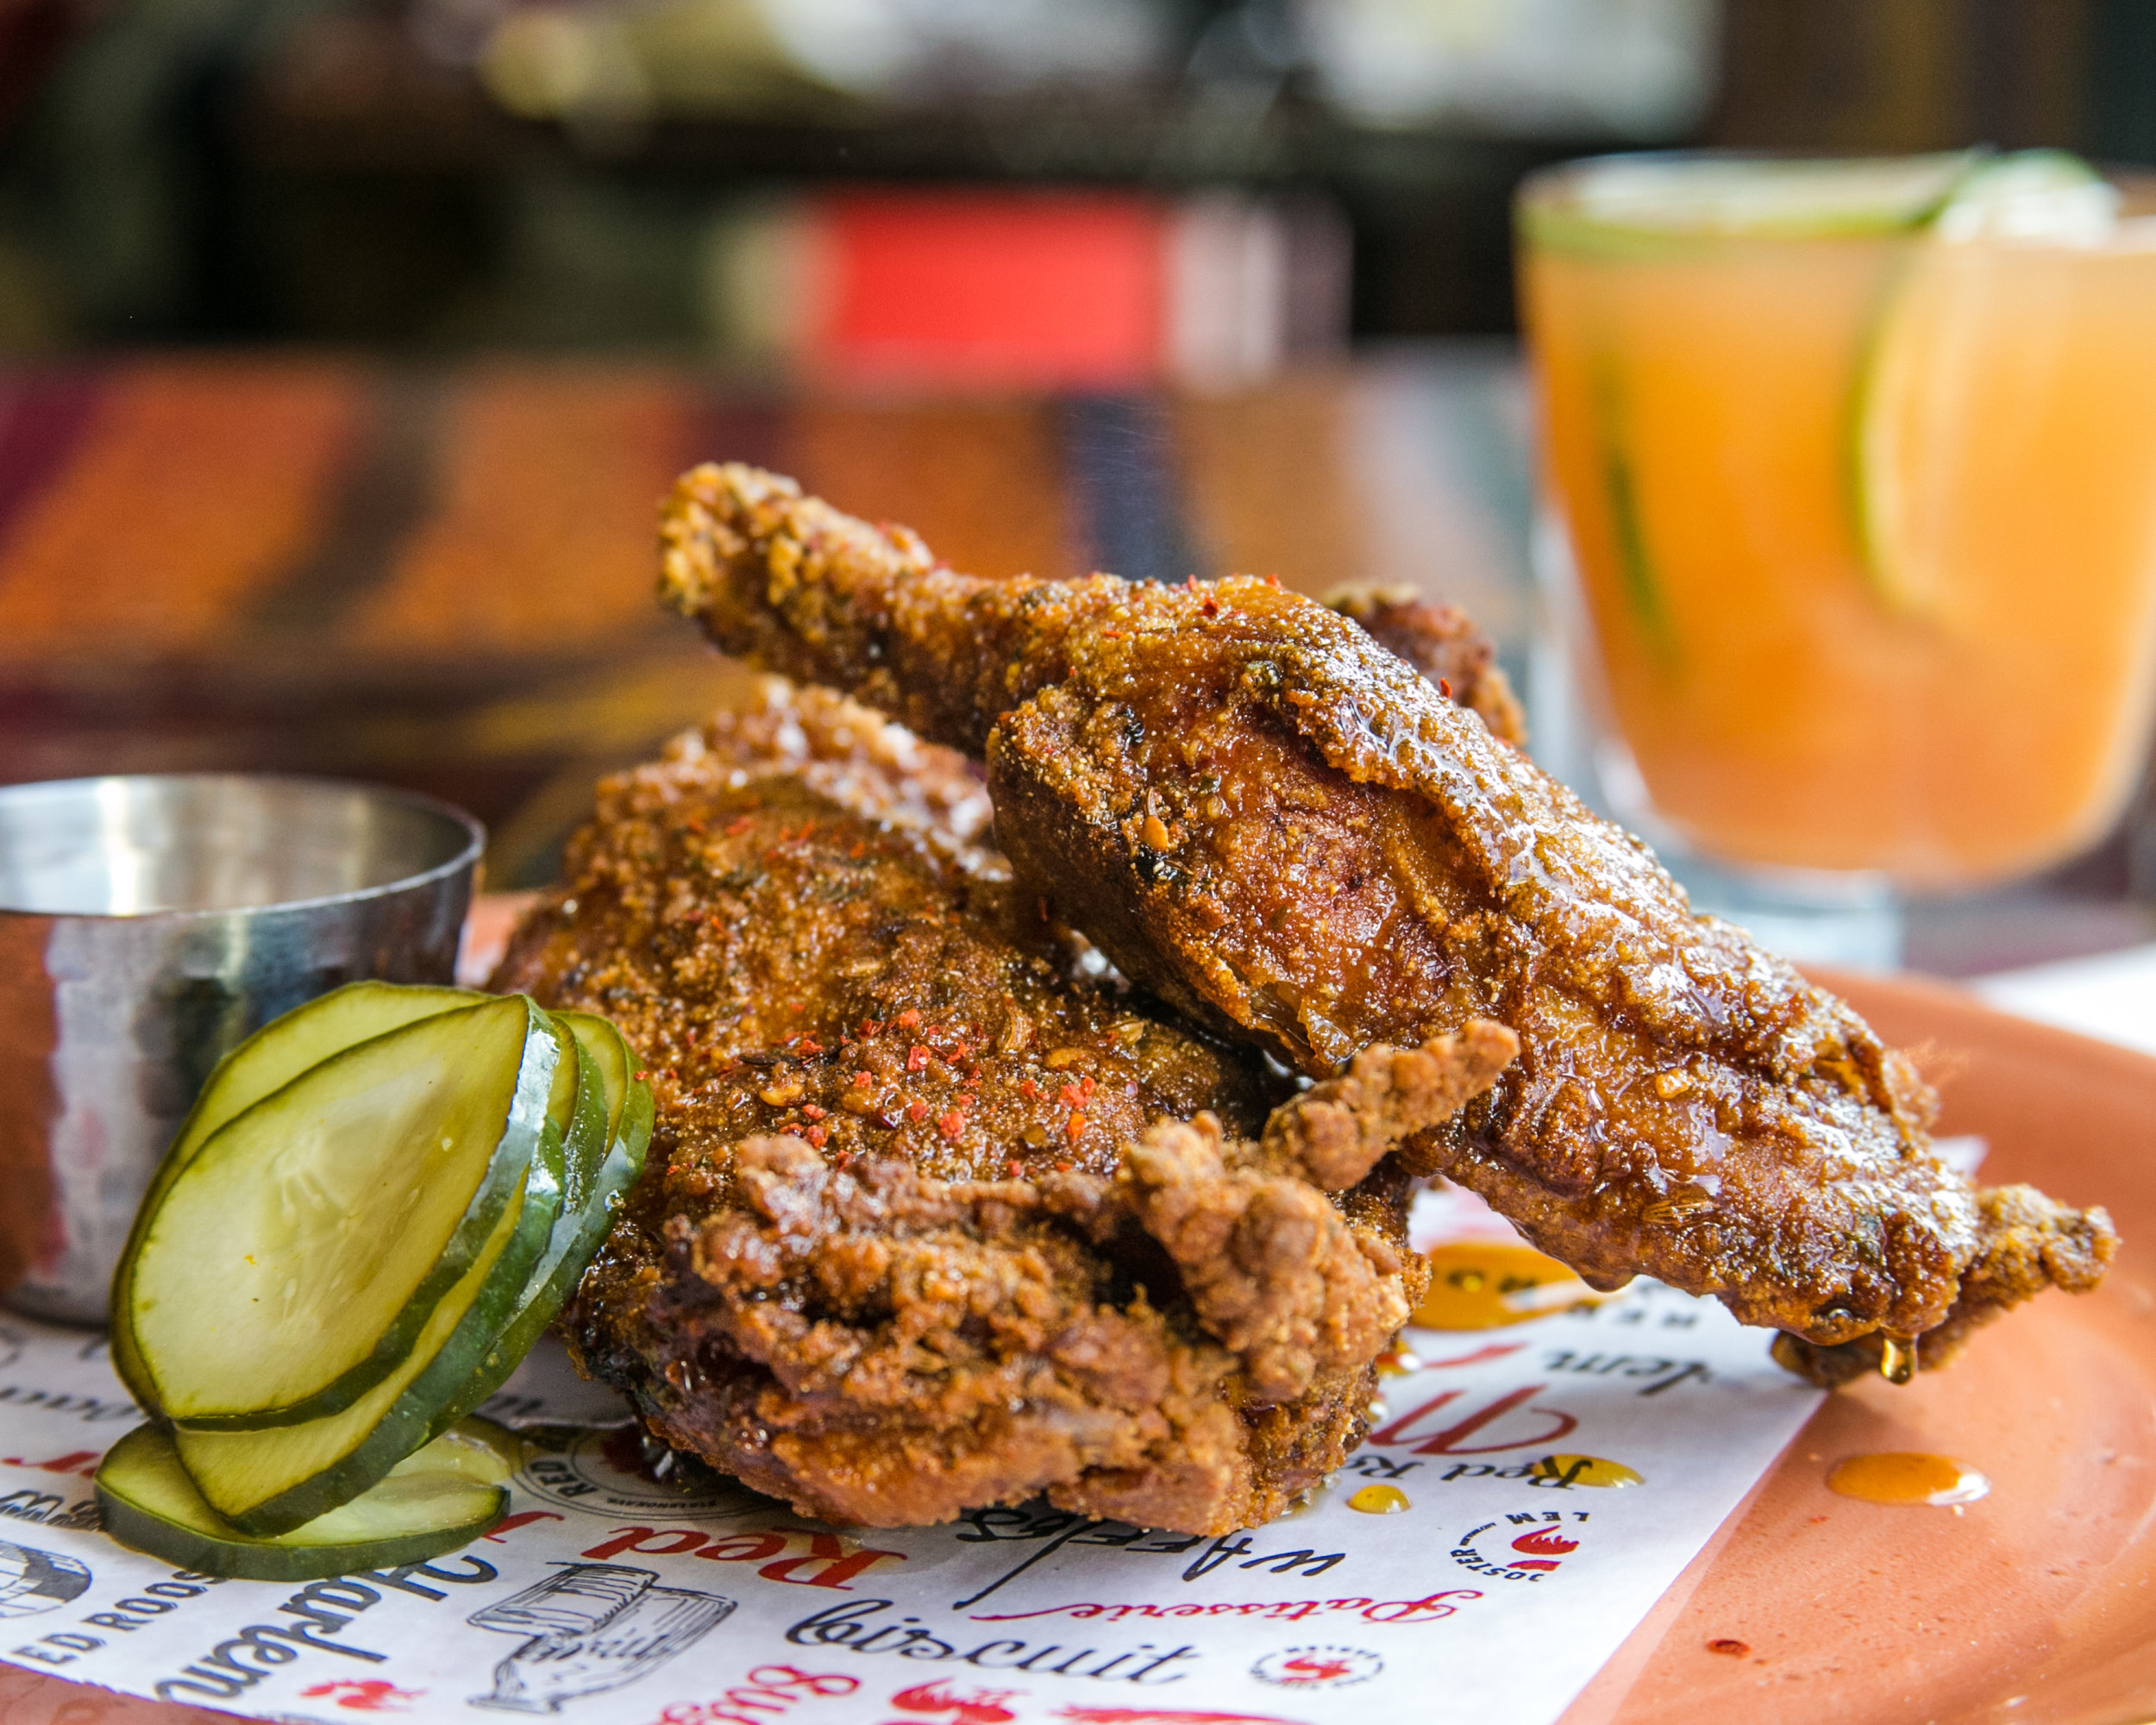 Red Rooster_Fried Chicken with Honey Hot Chili Sauce_native-4.jpg